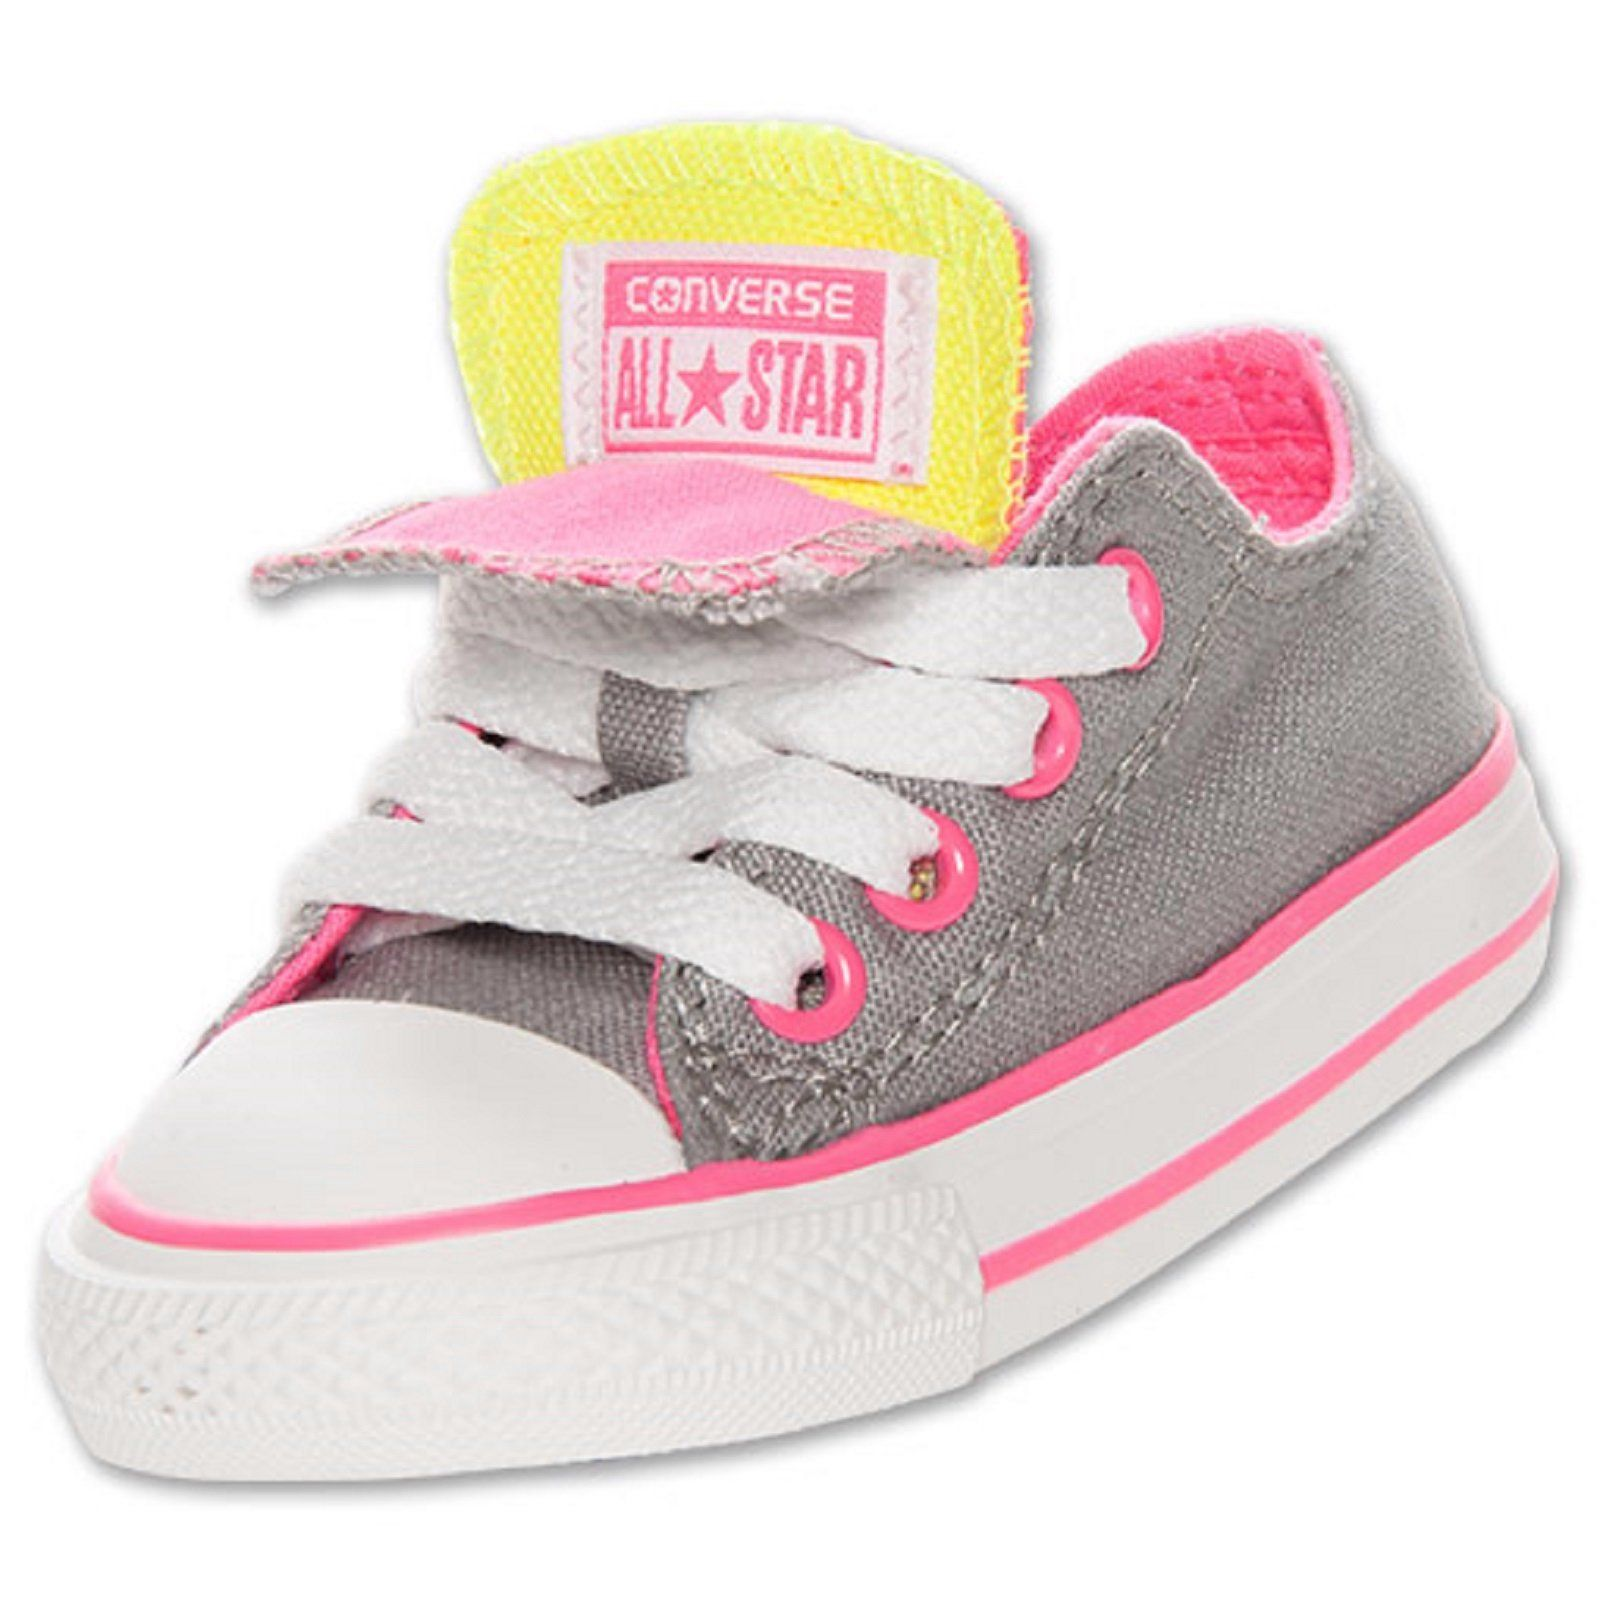 b40509fcb187 Baby Girls Shoes Converse Chuck Taylor Double Tongue Ox Toddler Sizes Grey  Pink